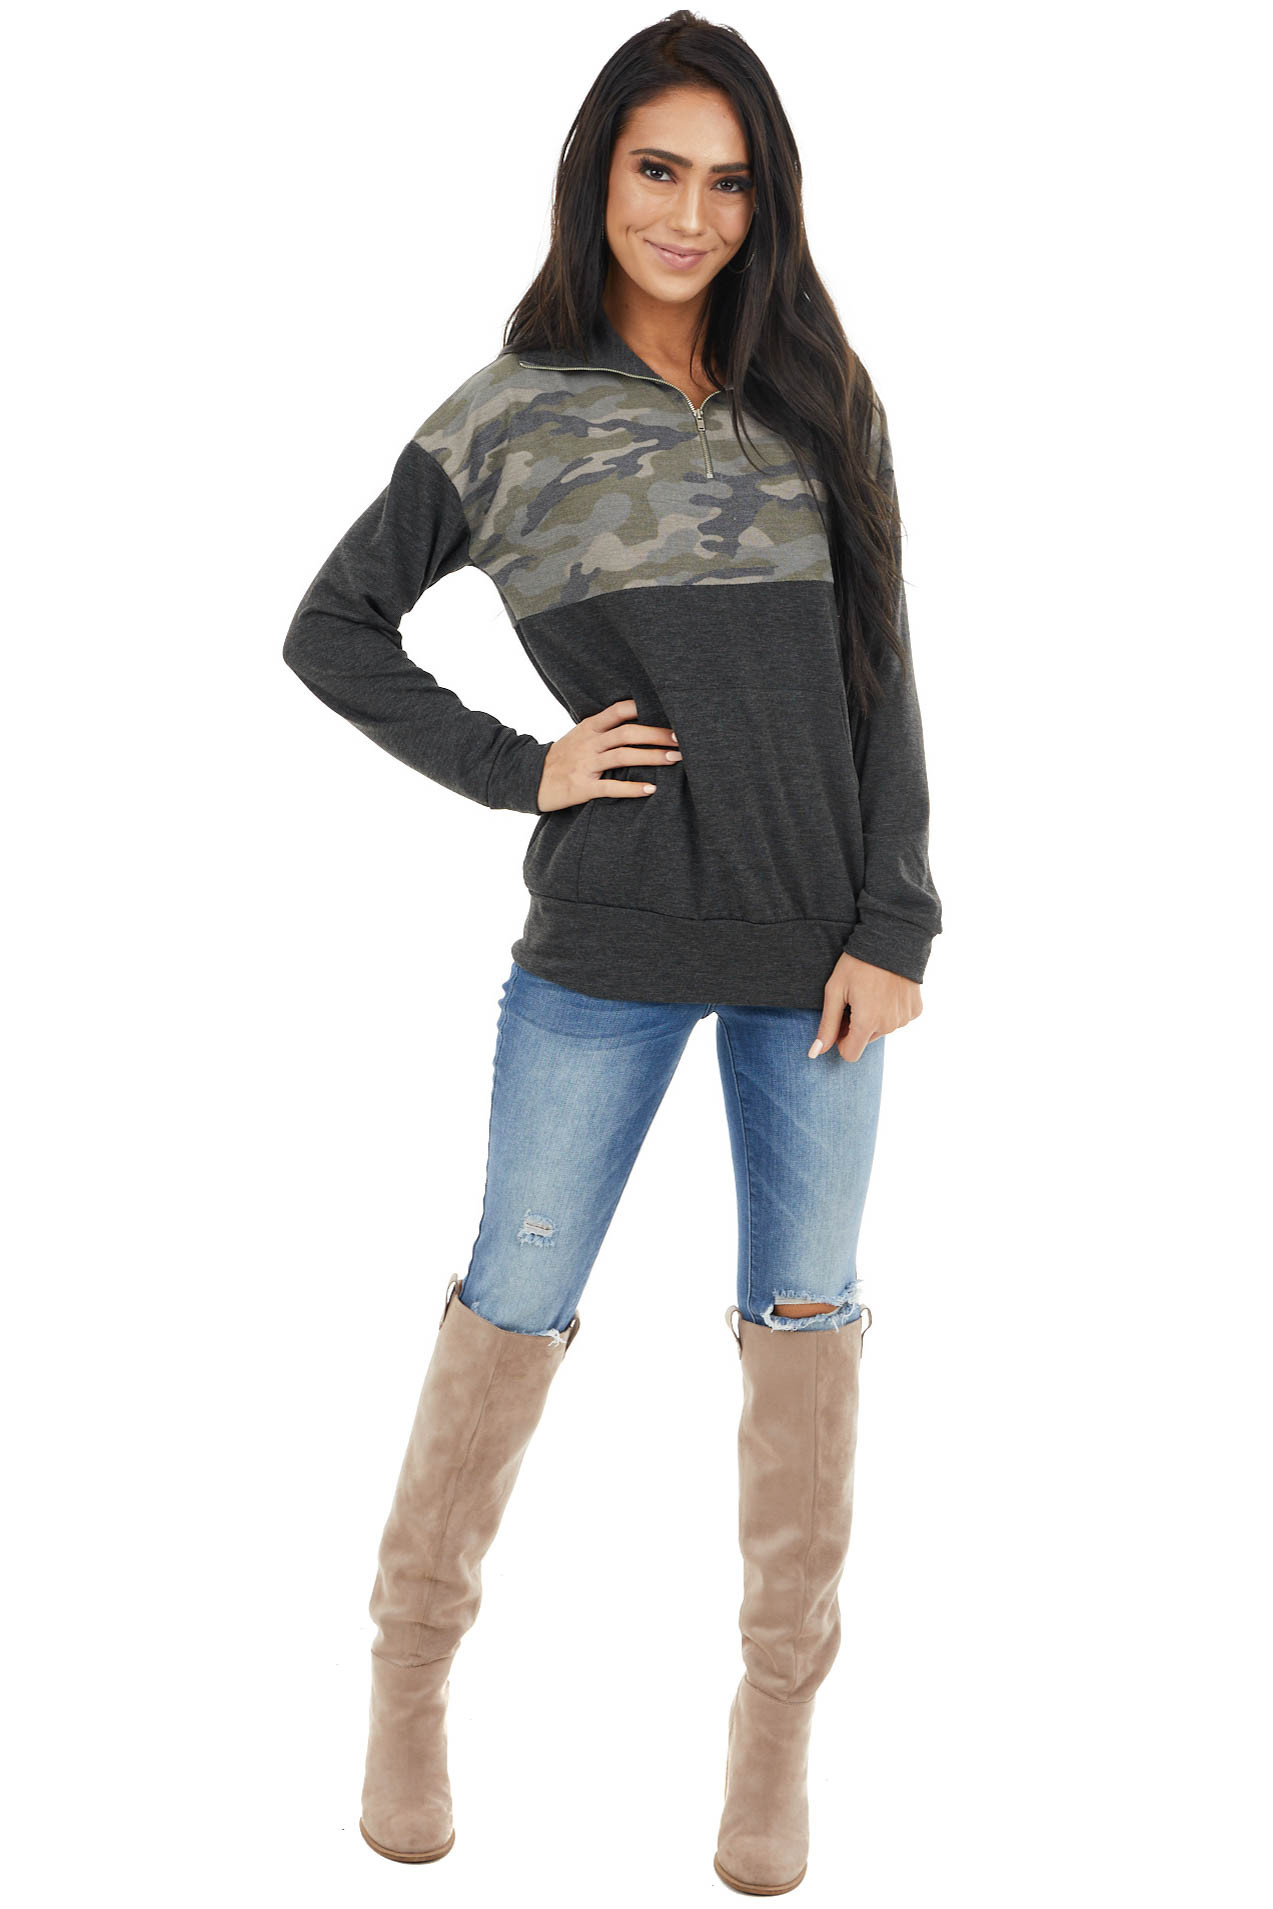 Charcoal and Camo Long Sleeve Pullover with Zipper Detail